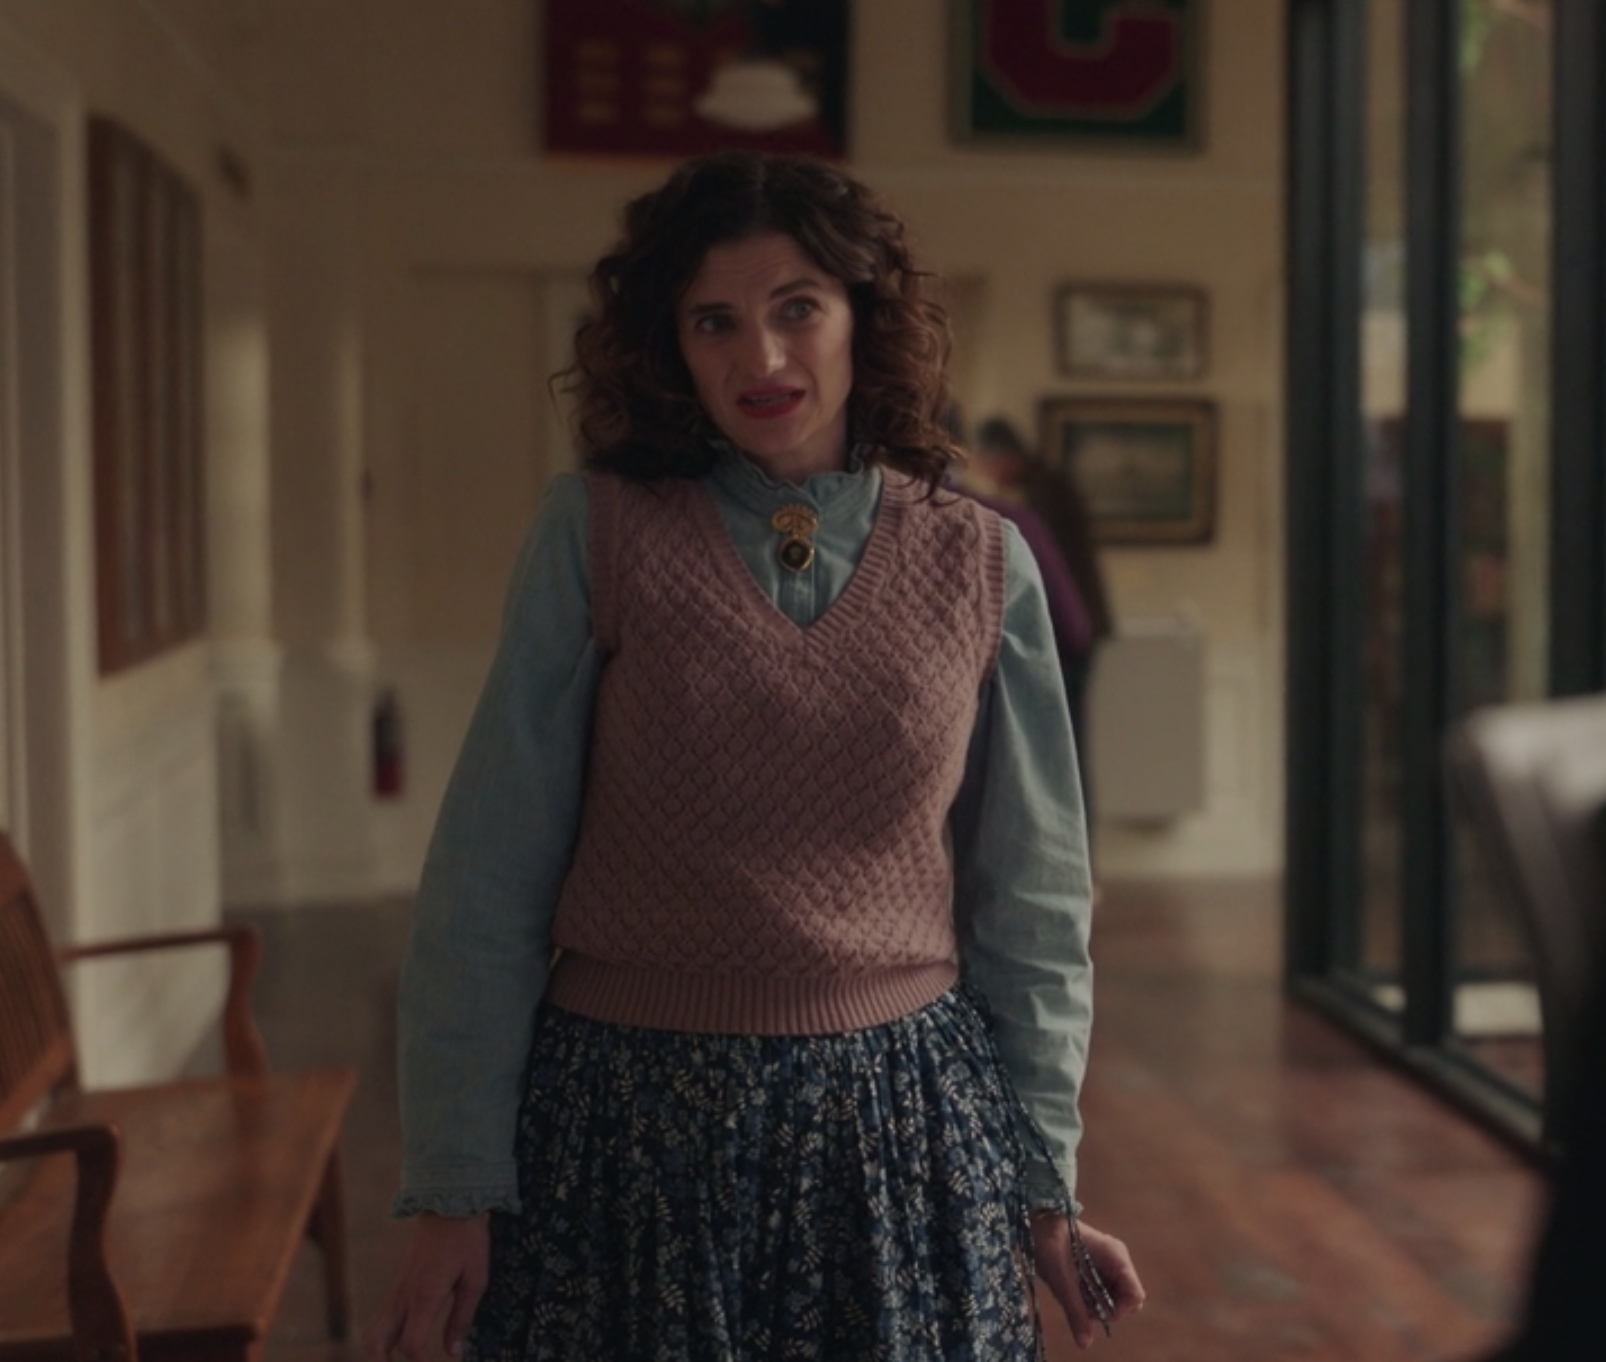 Wendy wears a knit vest over a button up top and a floral skirt